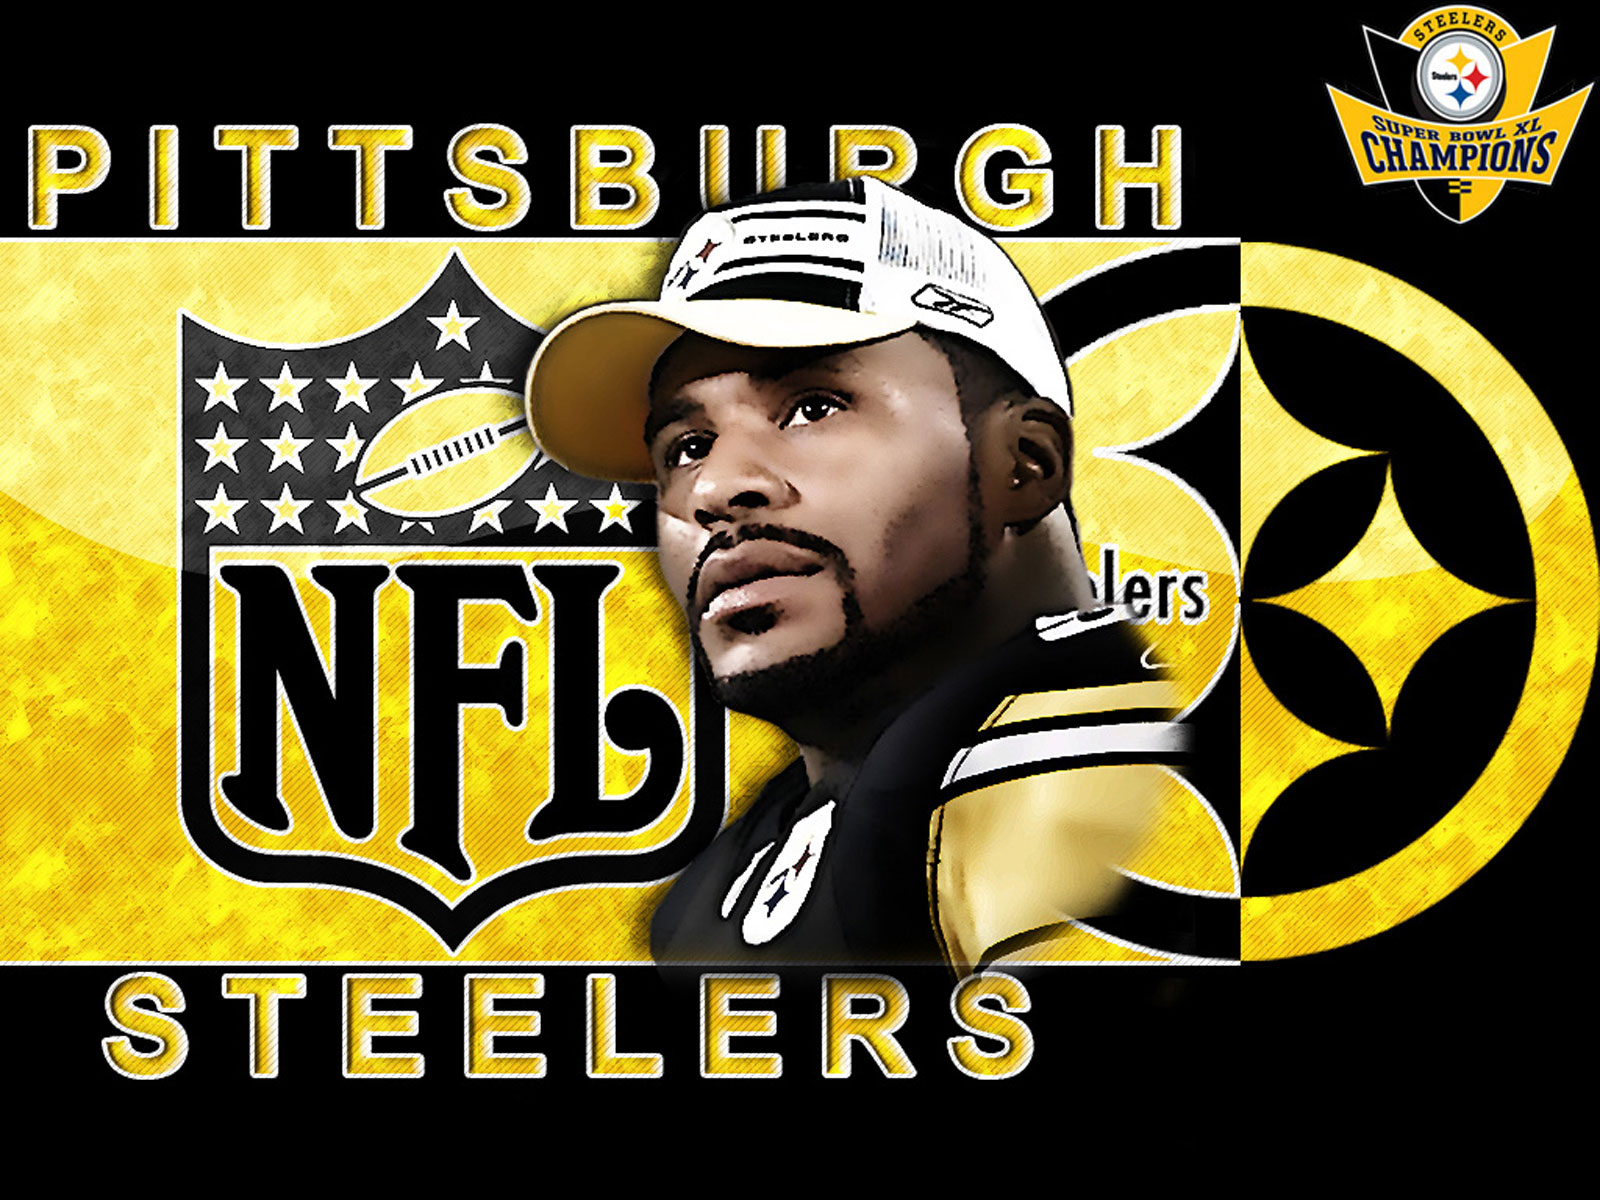 Pittsburgh Steelers wallpaper desktop image Pittsburgh Steelers 1600x1200